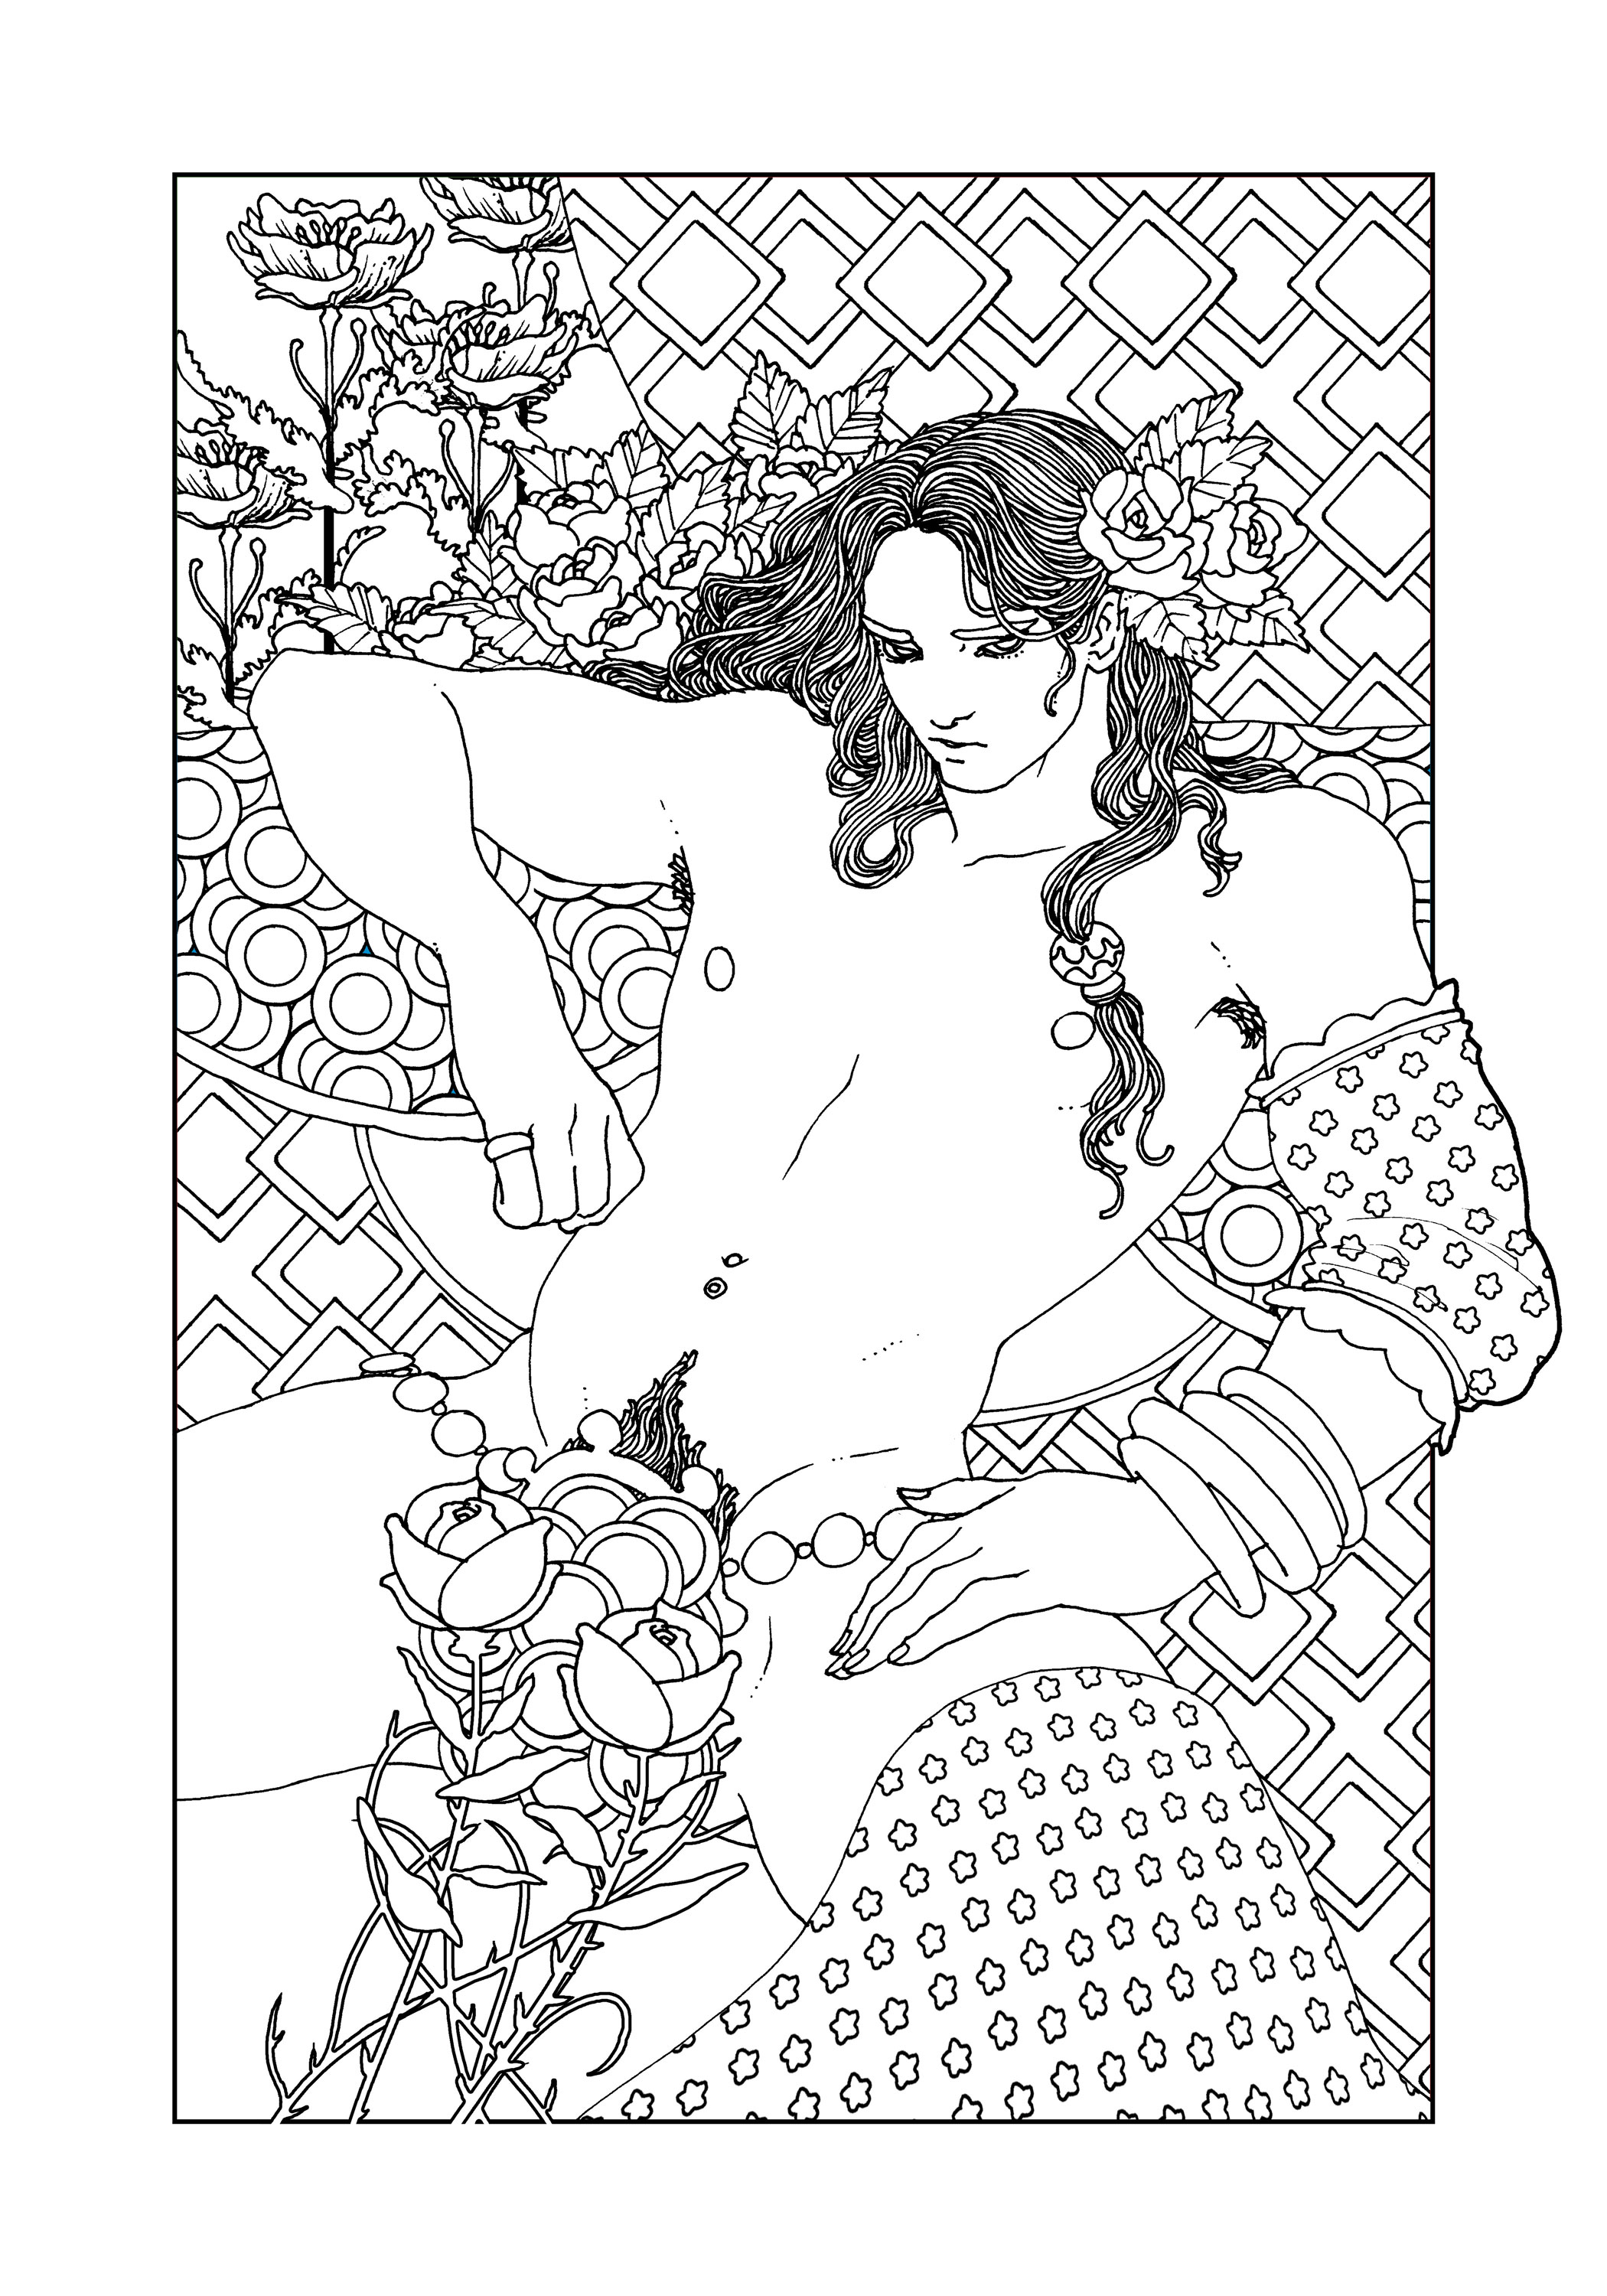 Nude women coloring book pictures — pic 12